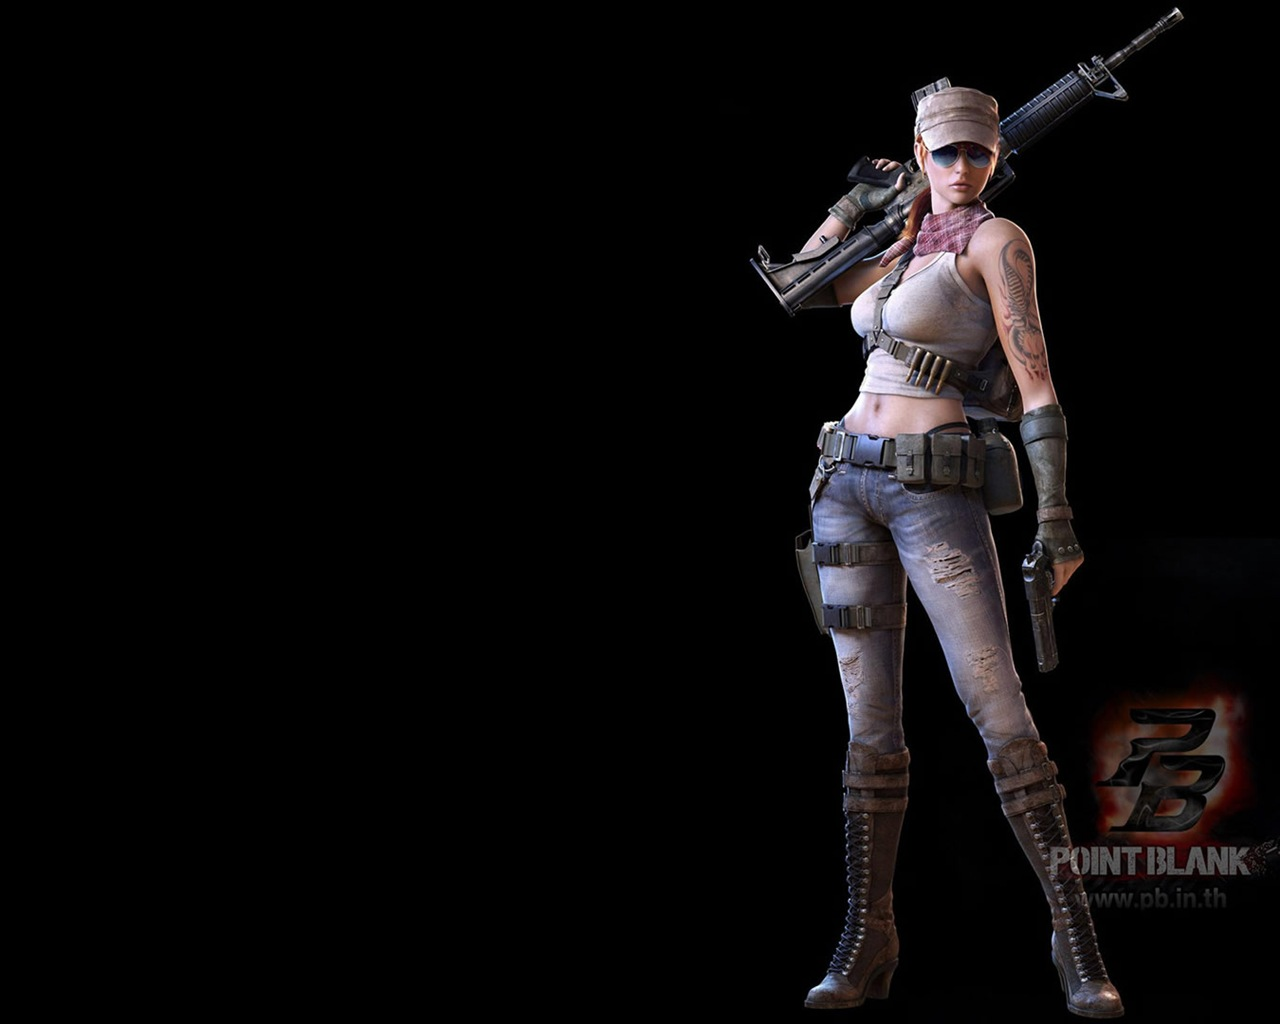 Point Blank Hd Game Wallpapers 18 1280x1024 Wallpaper